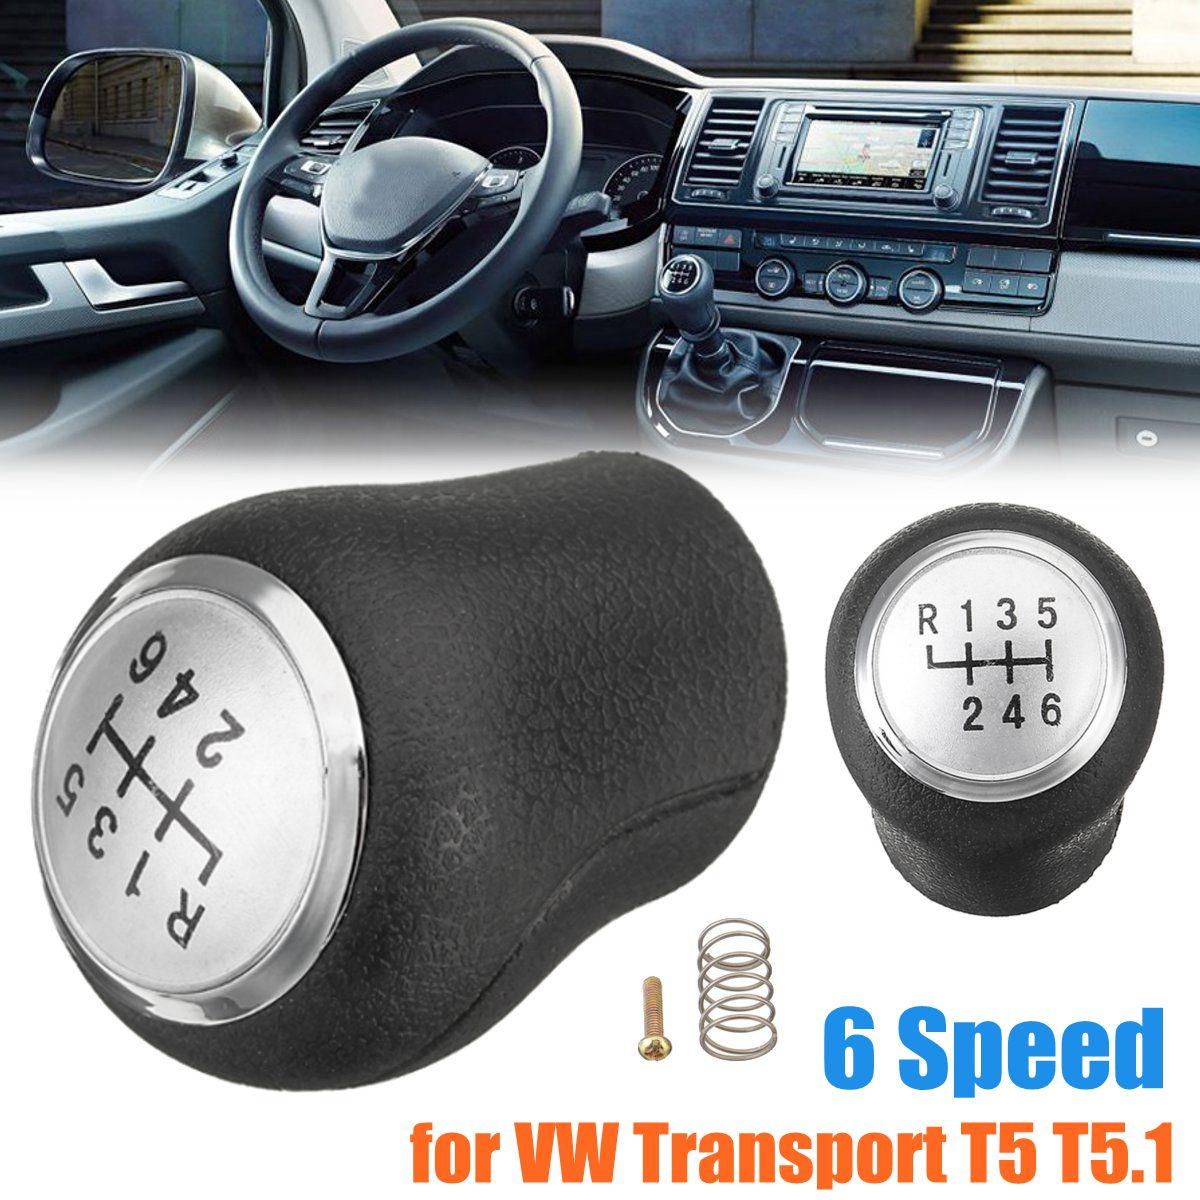 5 Speed 6 Speed Gear Shift Knob Cover Black For Volkswagen VW Transport T5 T5.1